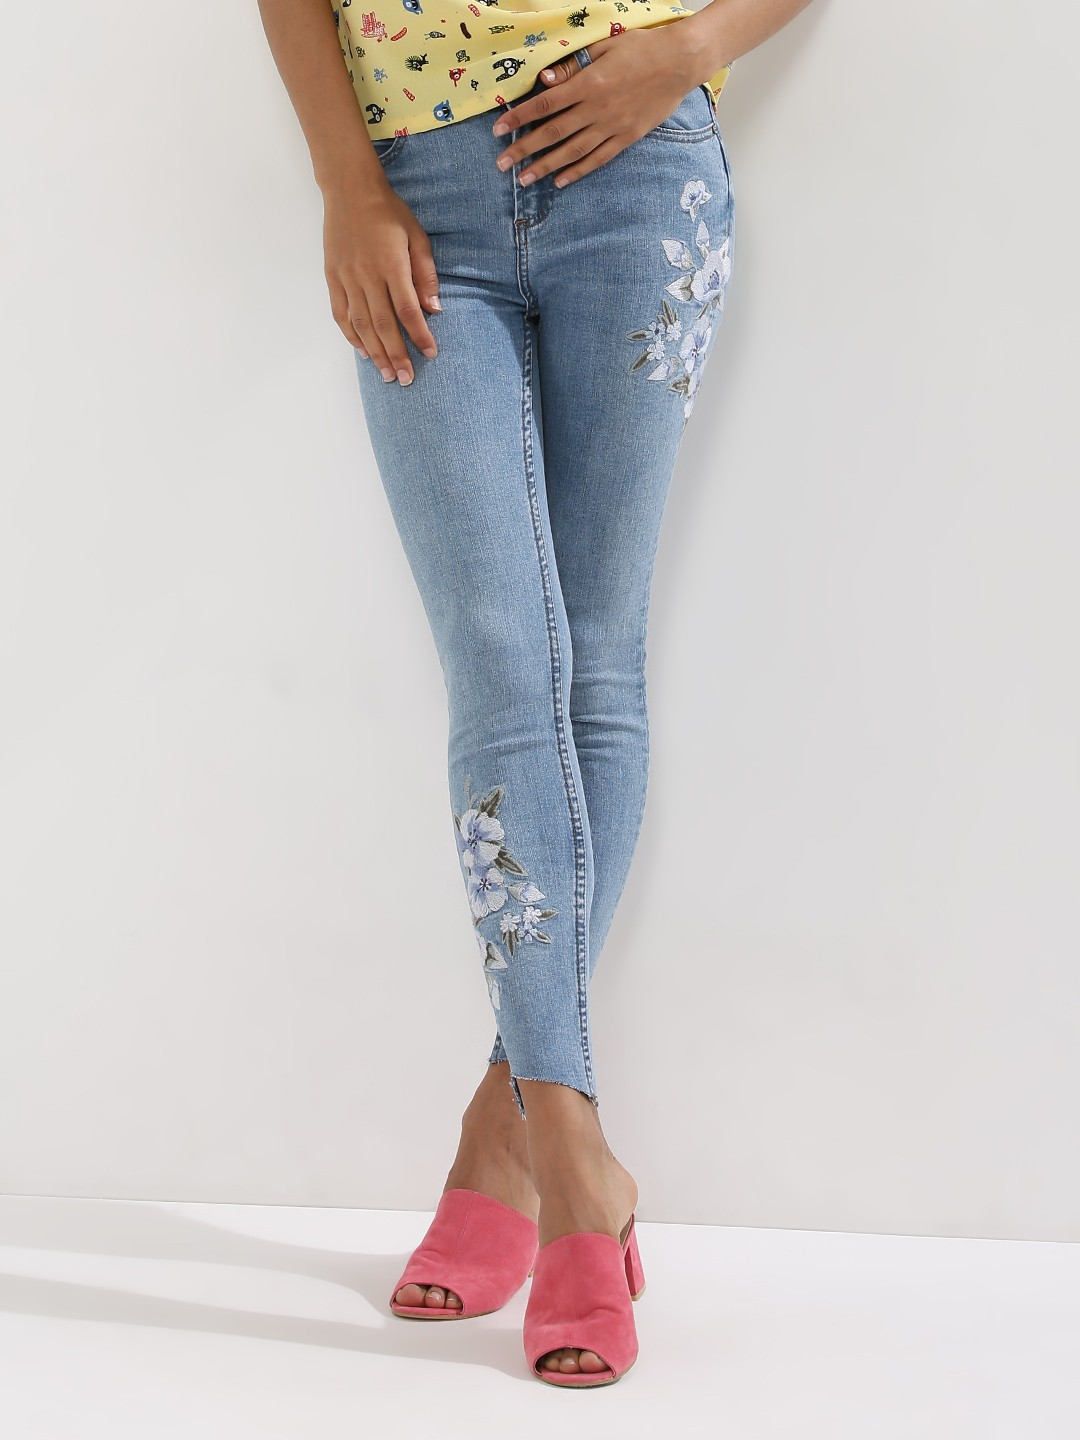 Buy NEW LOOK Embroidered Skinny Jeans For Women - Women's Blue ...